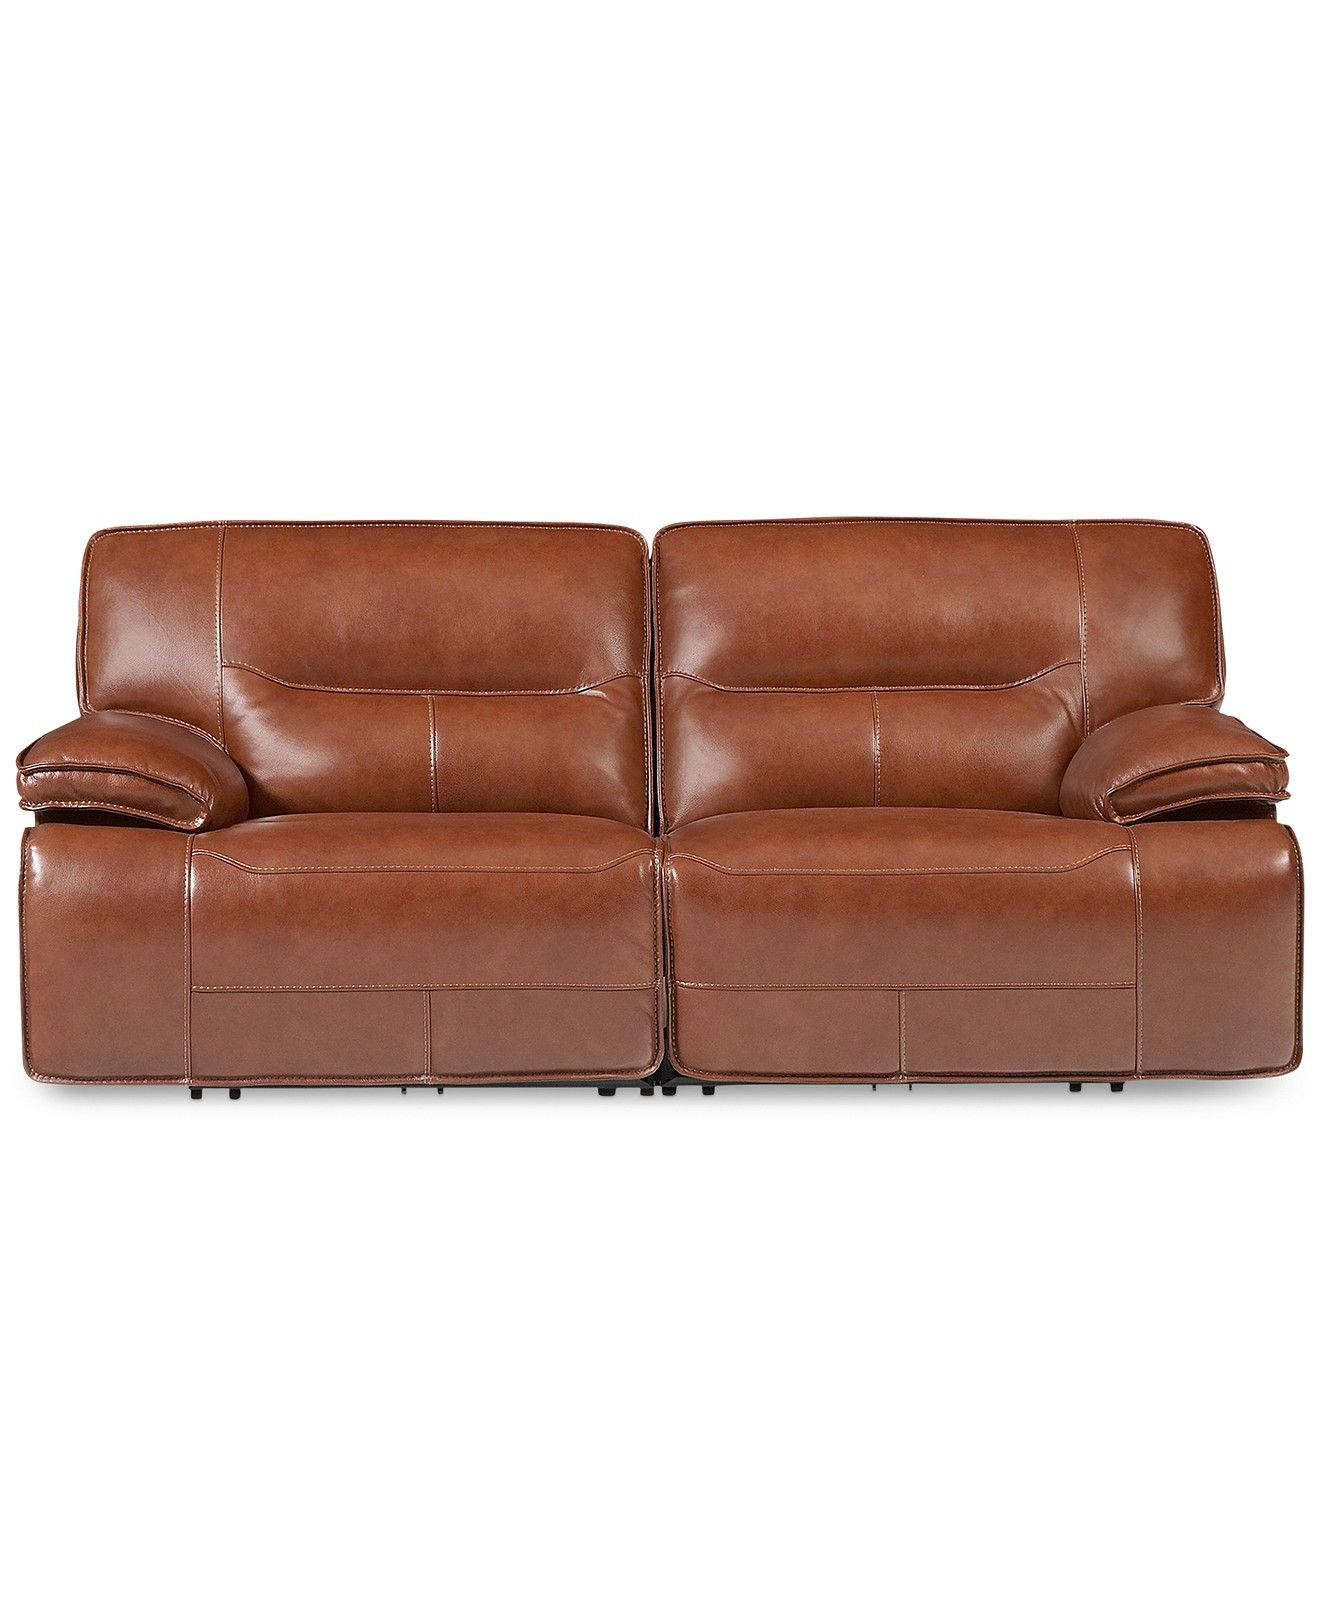 Beckett 2 pc Leather Sectional Sofa with 2 Power Recliners